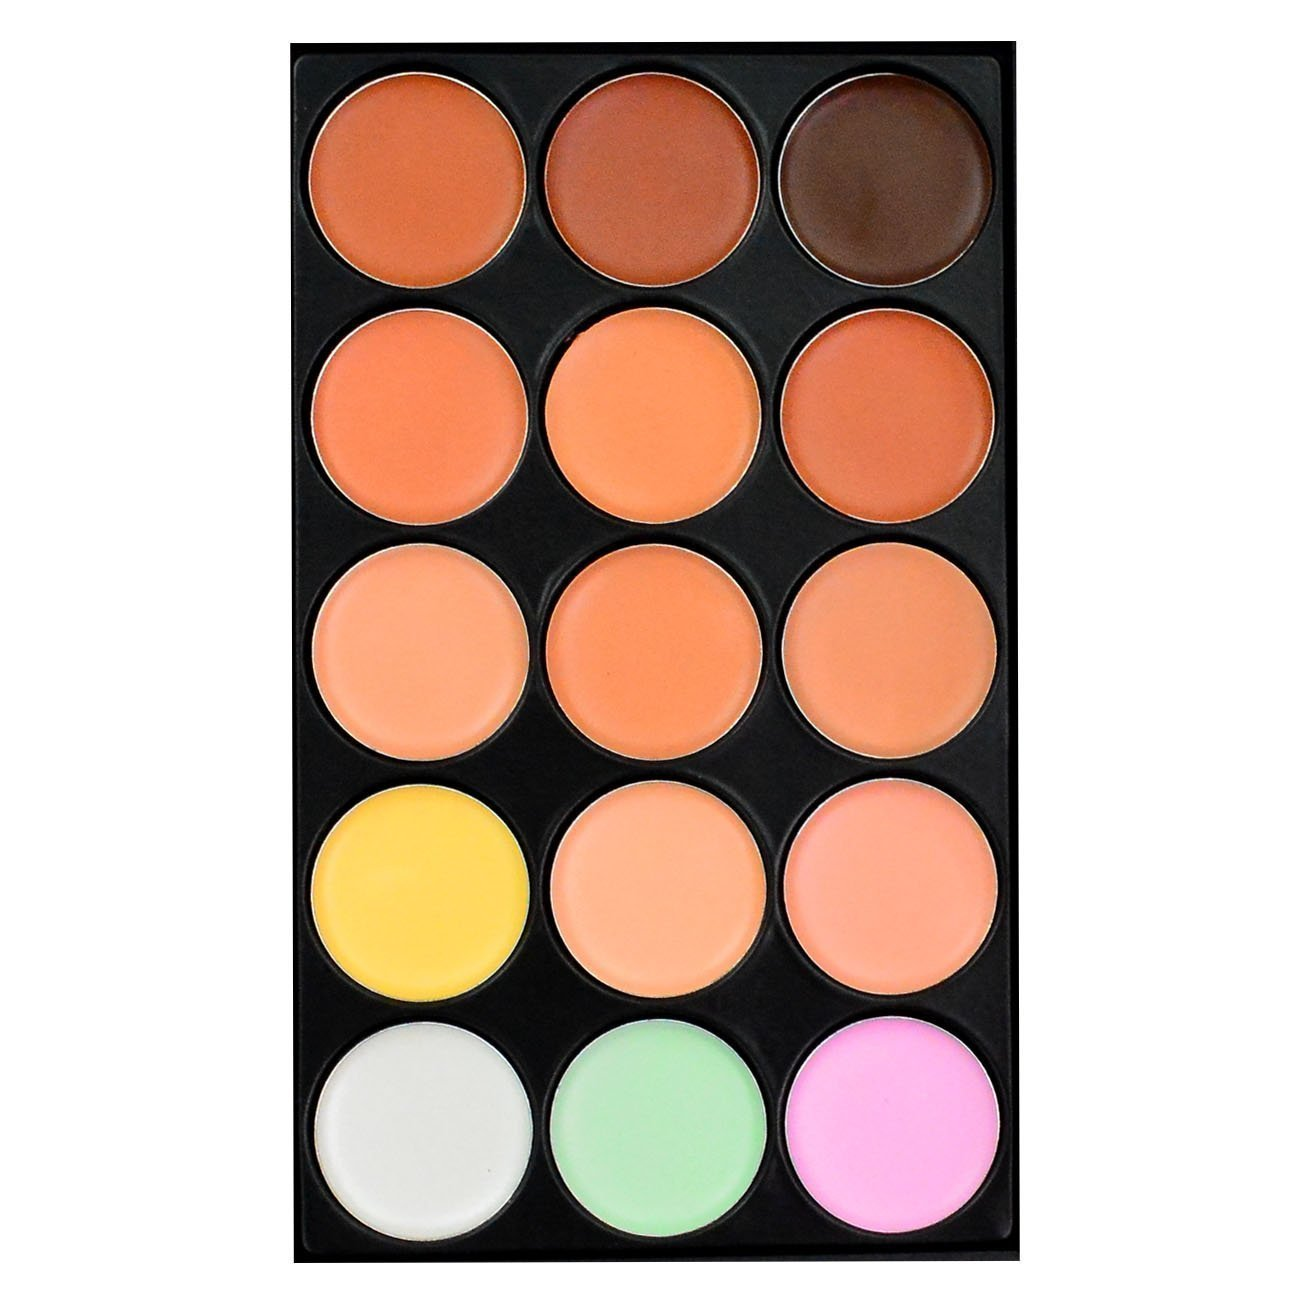 15 Color Concealer Makeup Palette Professional Camouflage Palette by HOVEOX by HOVEOX (Image #2)